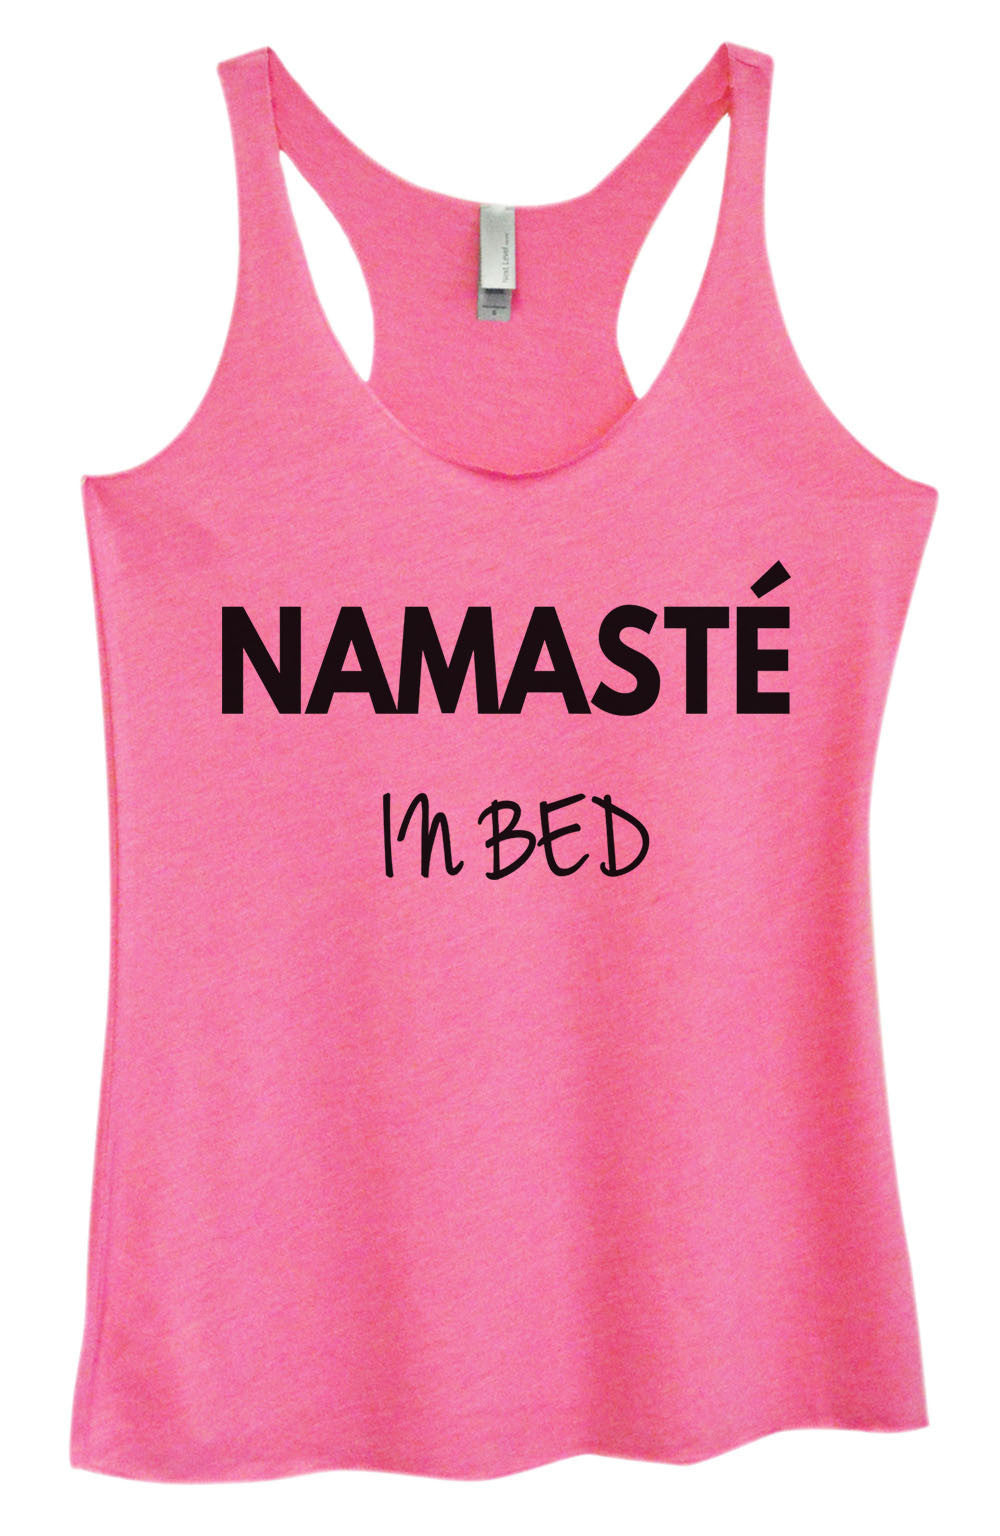 Womens Fashion Triblend Tank Top - Namaste In Bed - Tri-647 - Funny Shirts Tank Tops Burnouts and Triblends  - 3